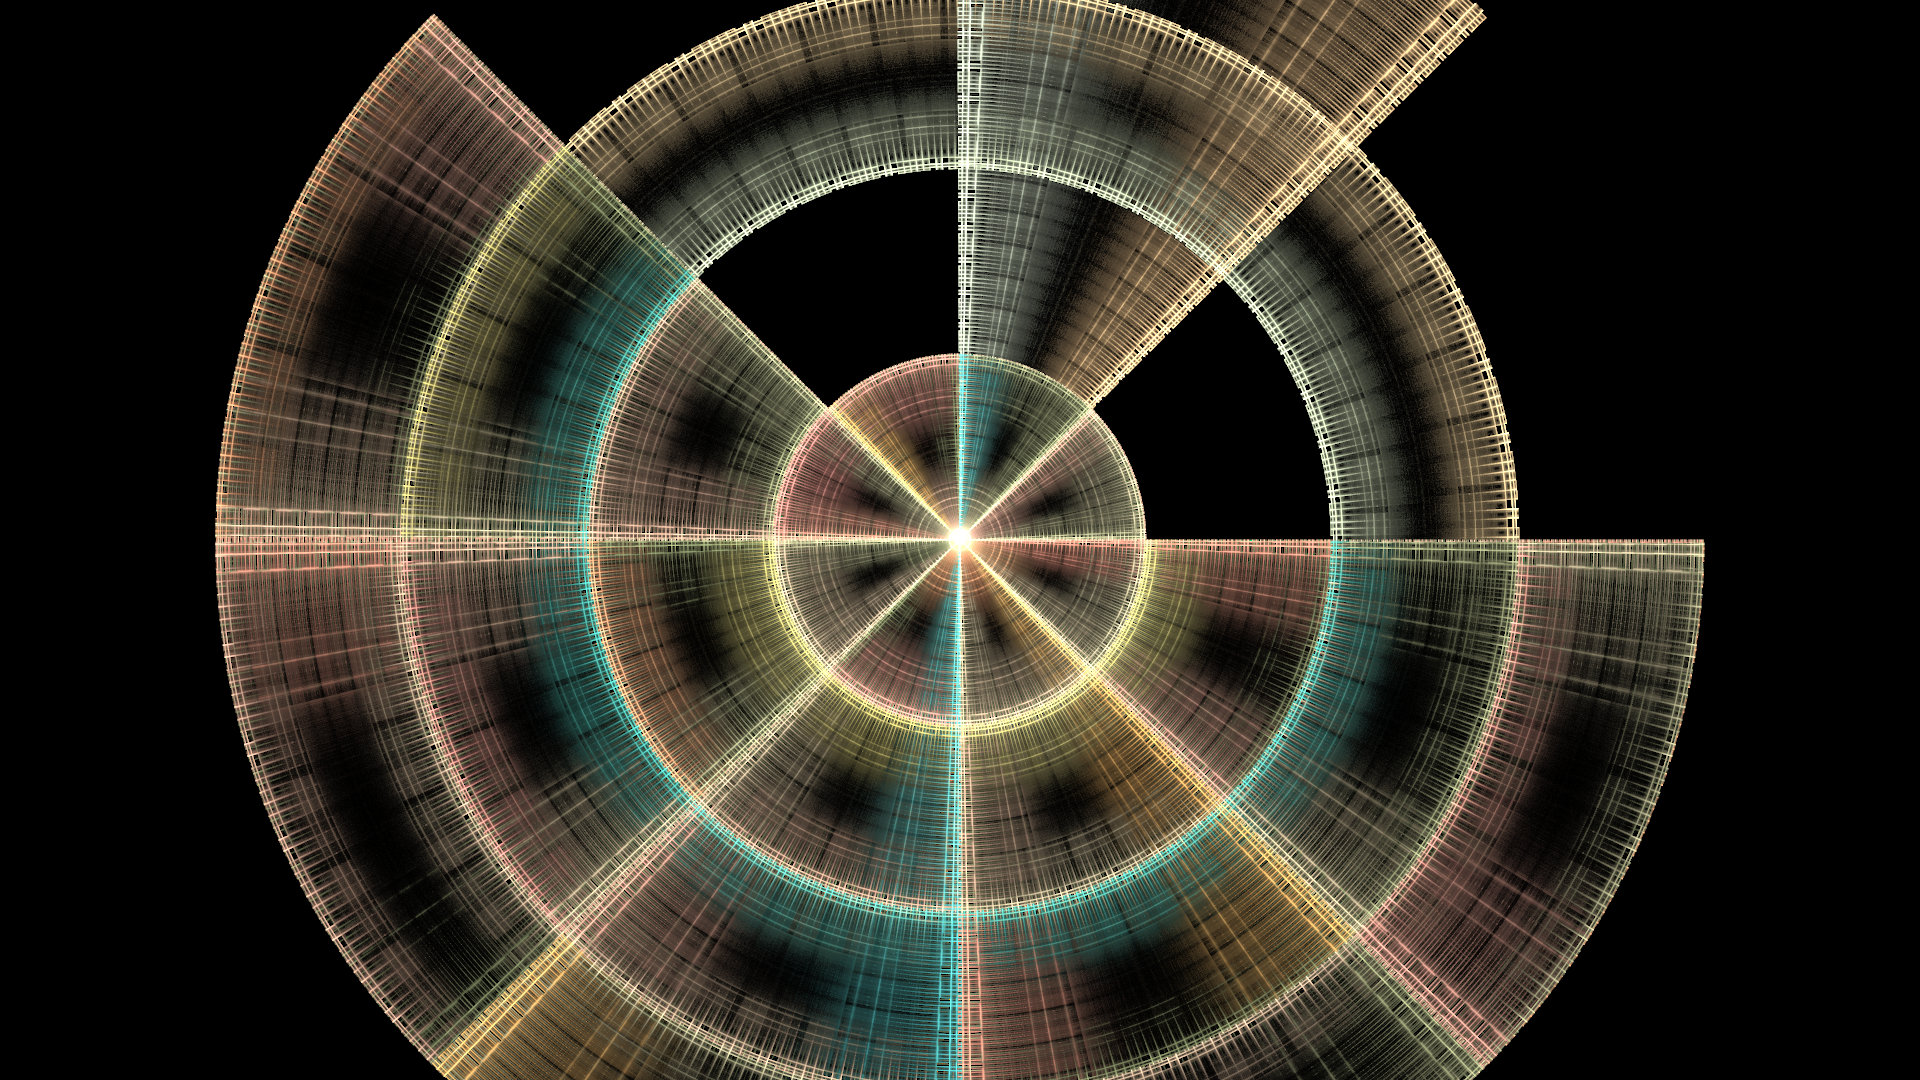 Relatively Unrelated Abstract №2032